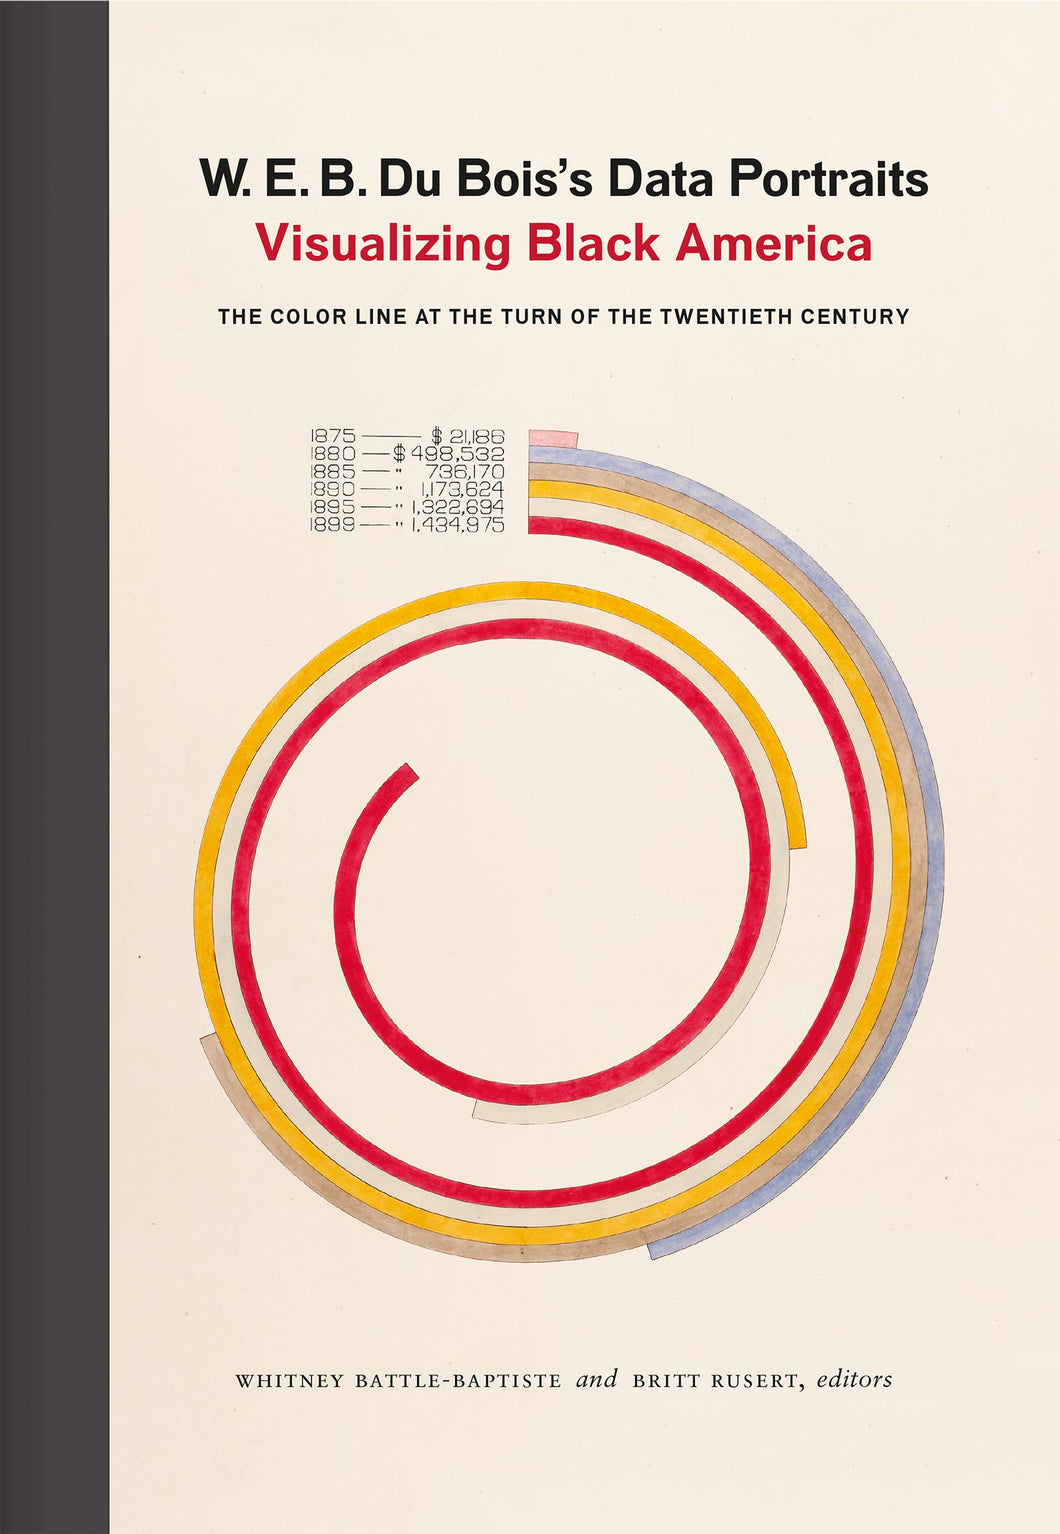 Data Portraits: Visualizing Black America by W.E.B. Du Bois